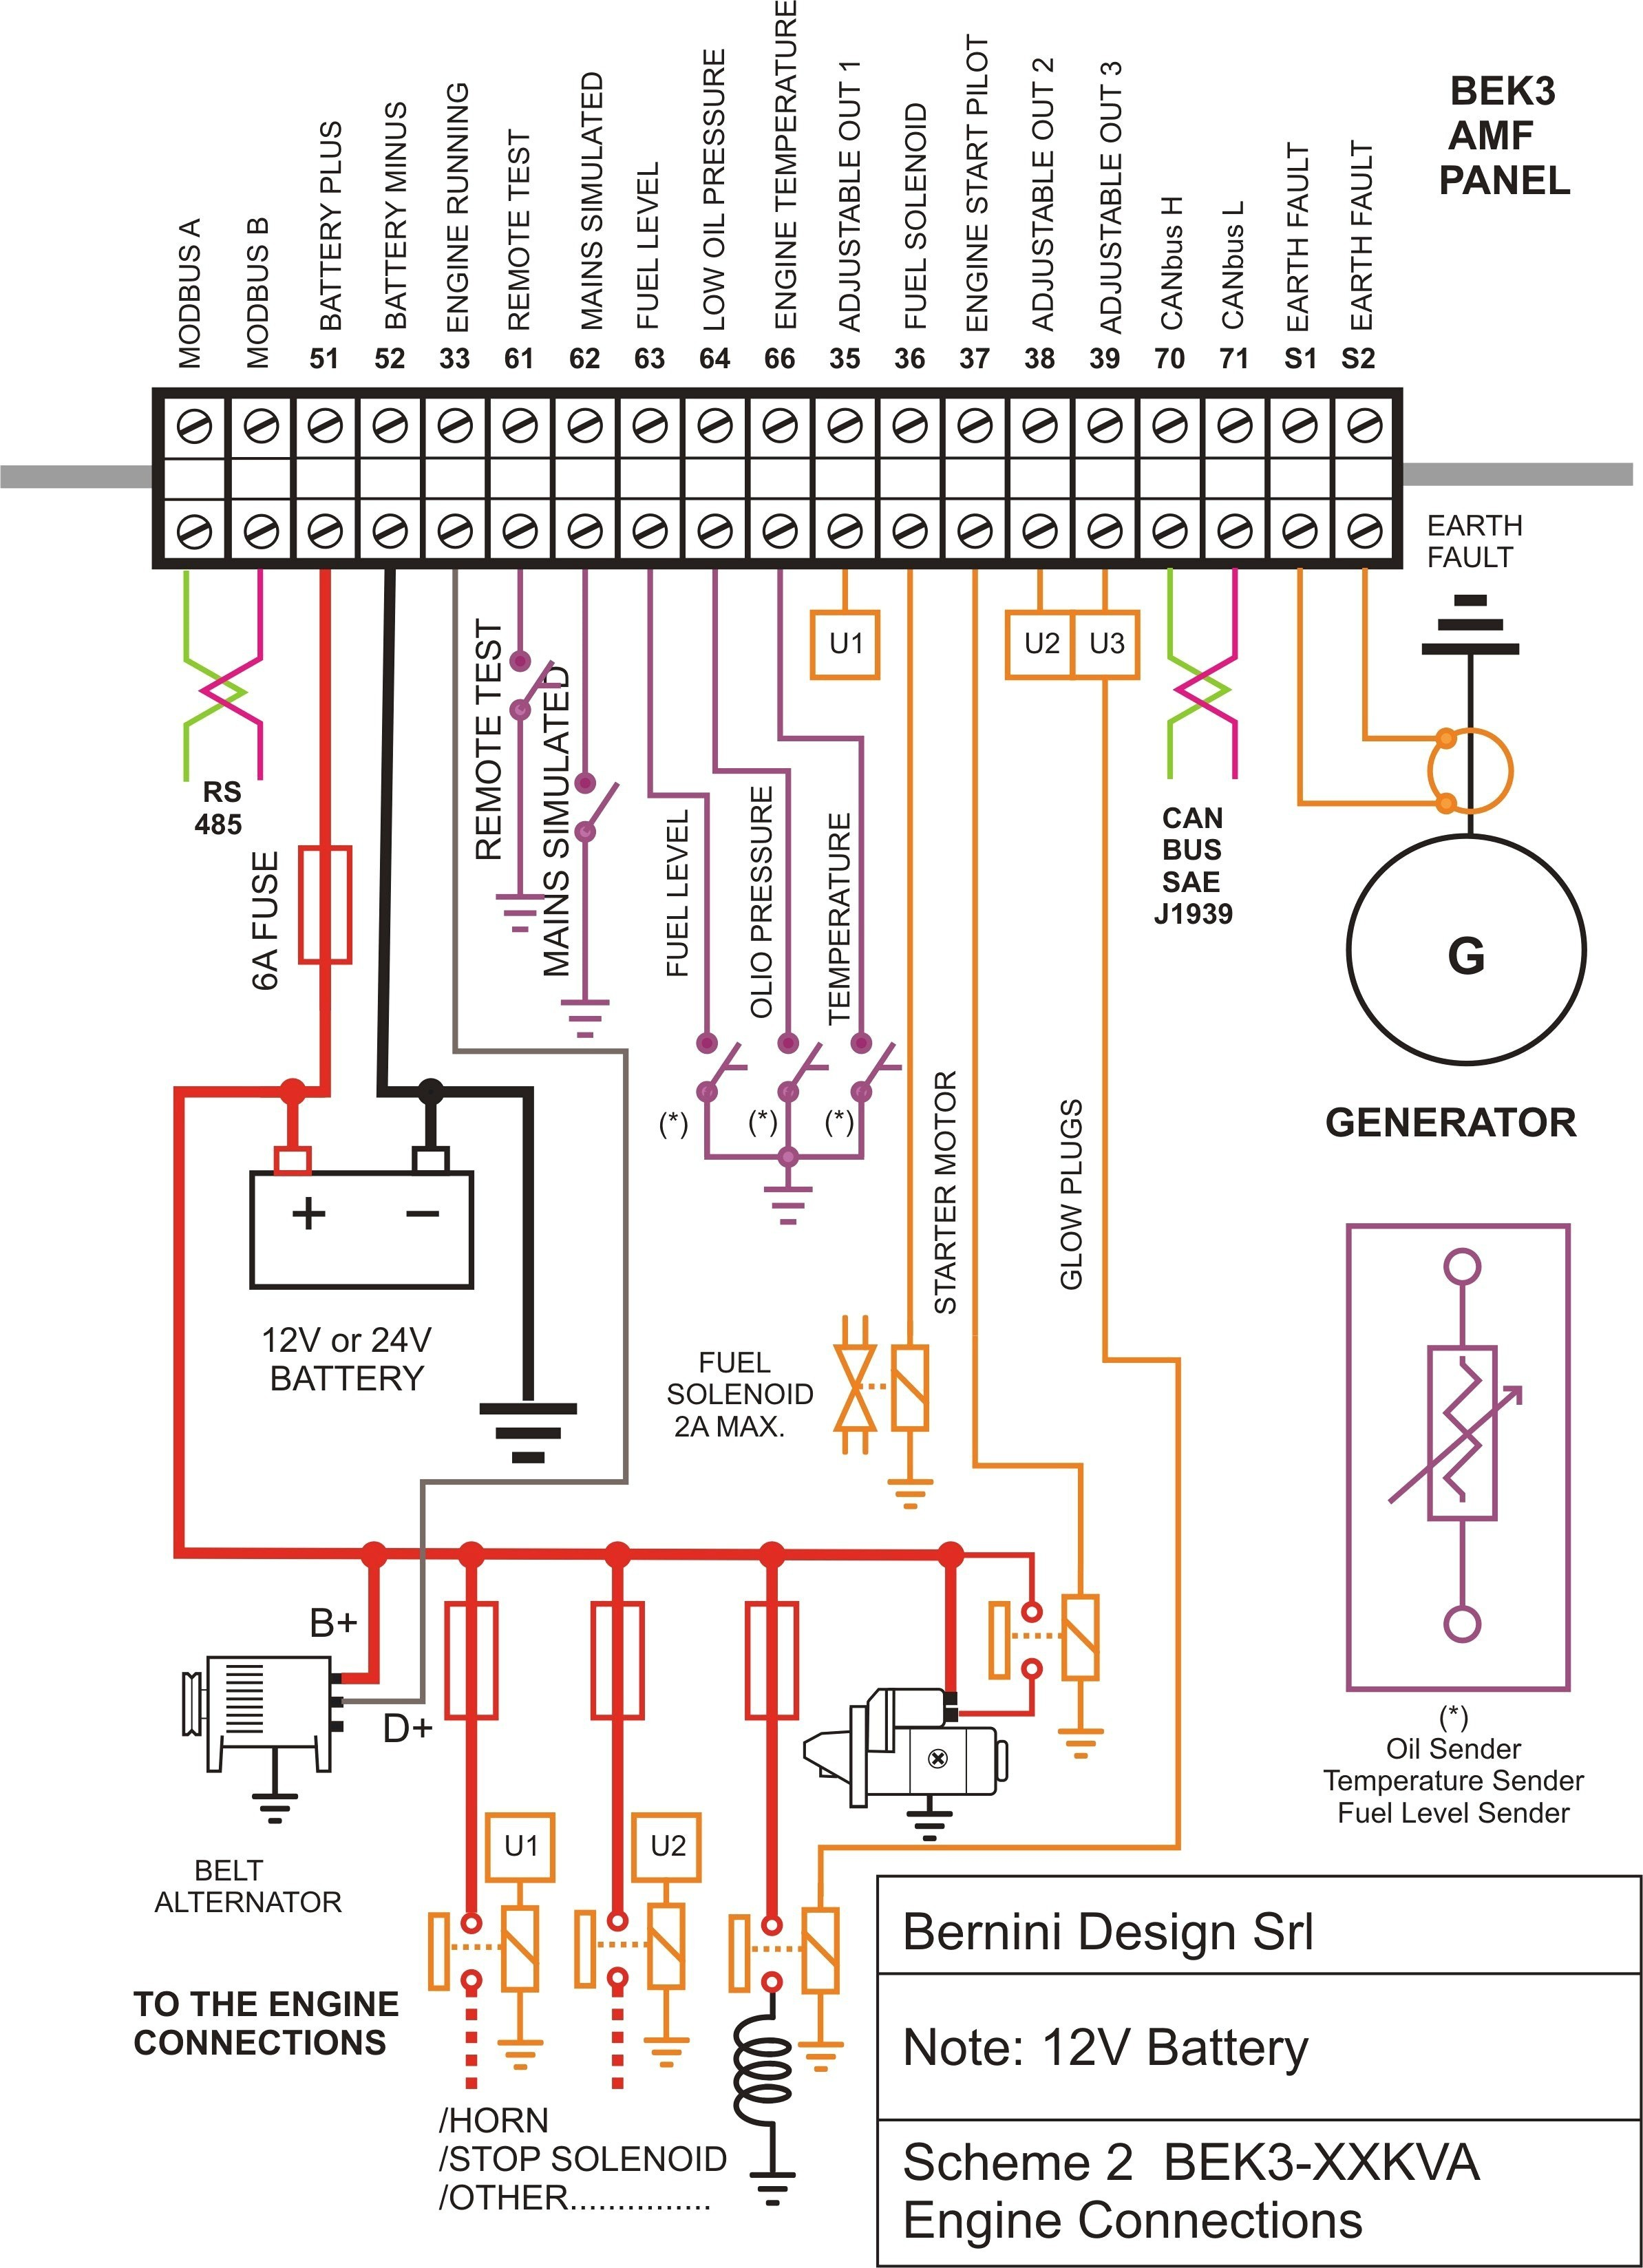 Simple Electrical Wiring Diagrams Awesome Wiring Diagram software Open source Diagram Of Simple Electrical Wiring Diagrams